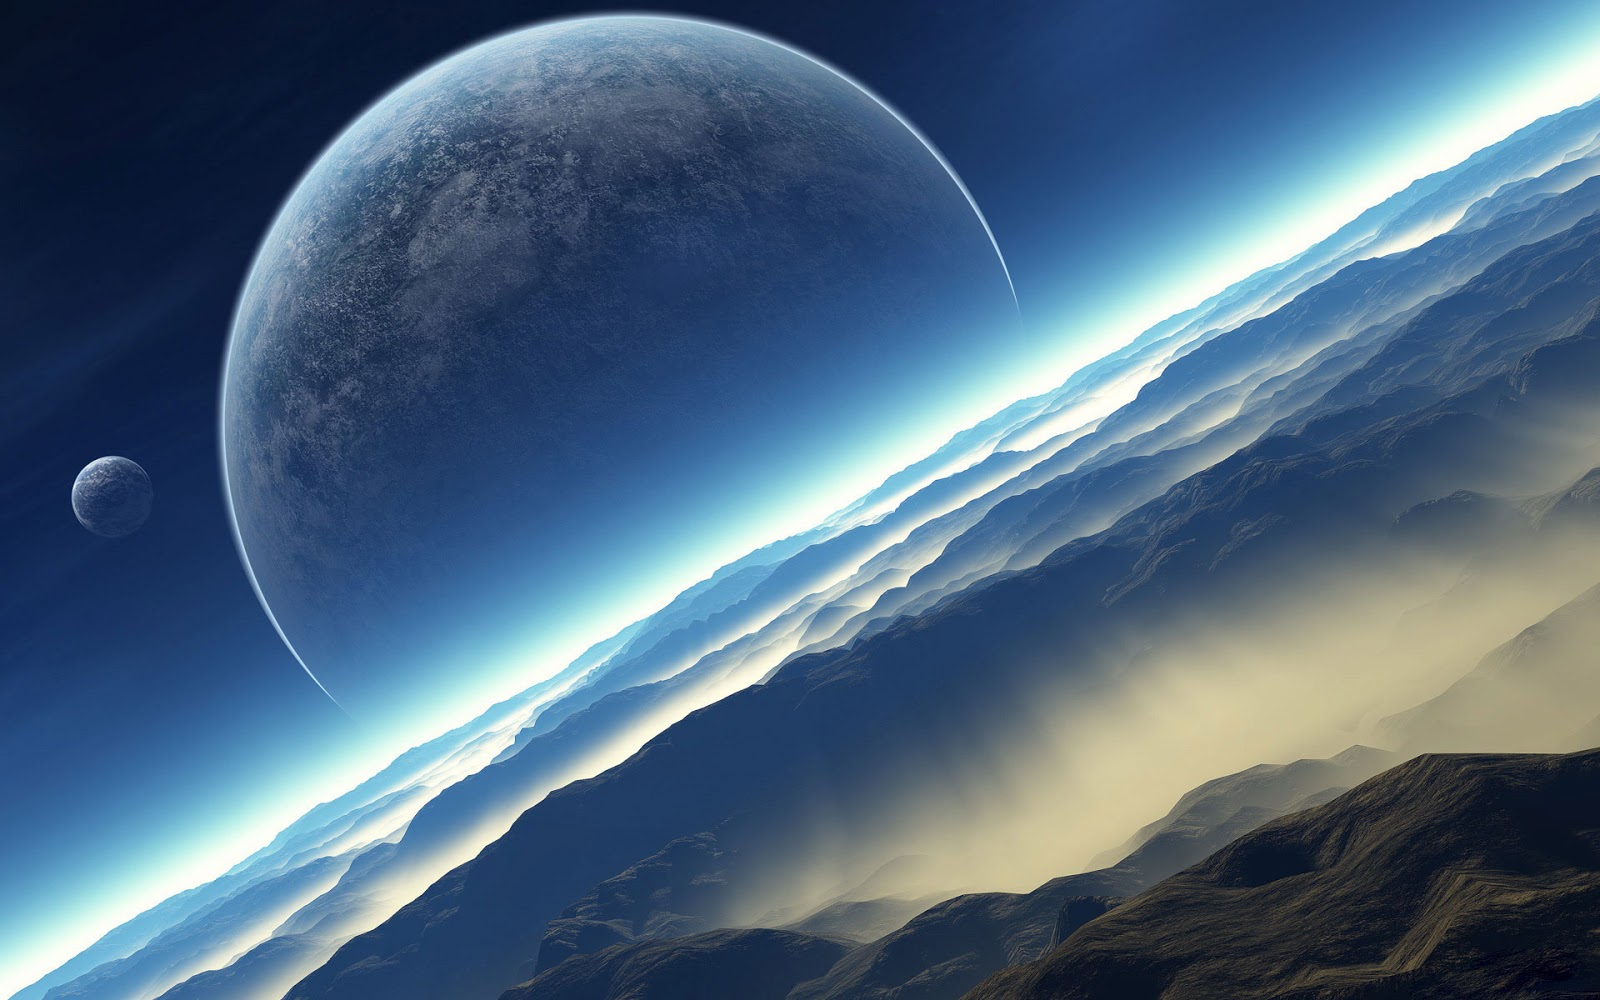 Planets hd wallpaper hd wallpaper Amazing Wallpapers 1600x1000